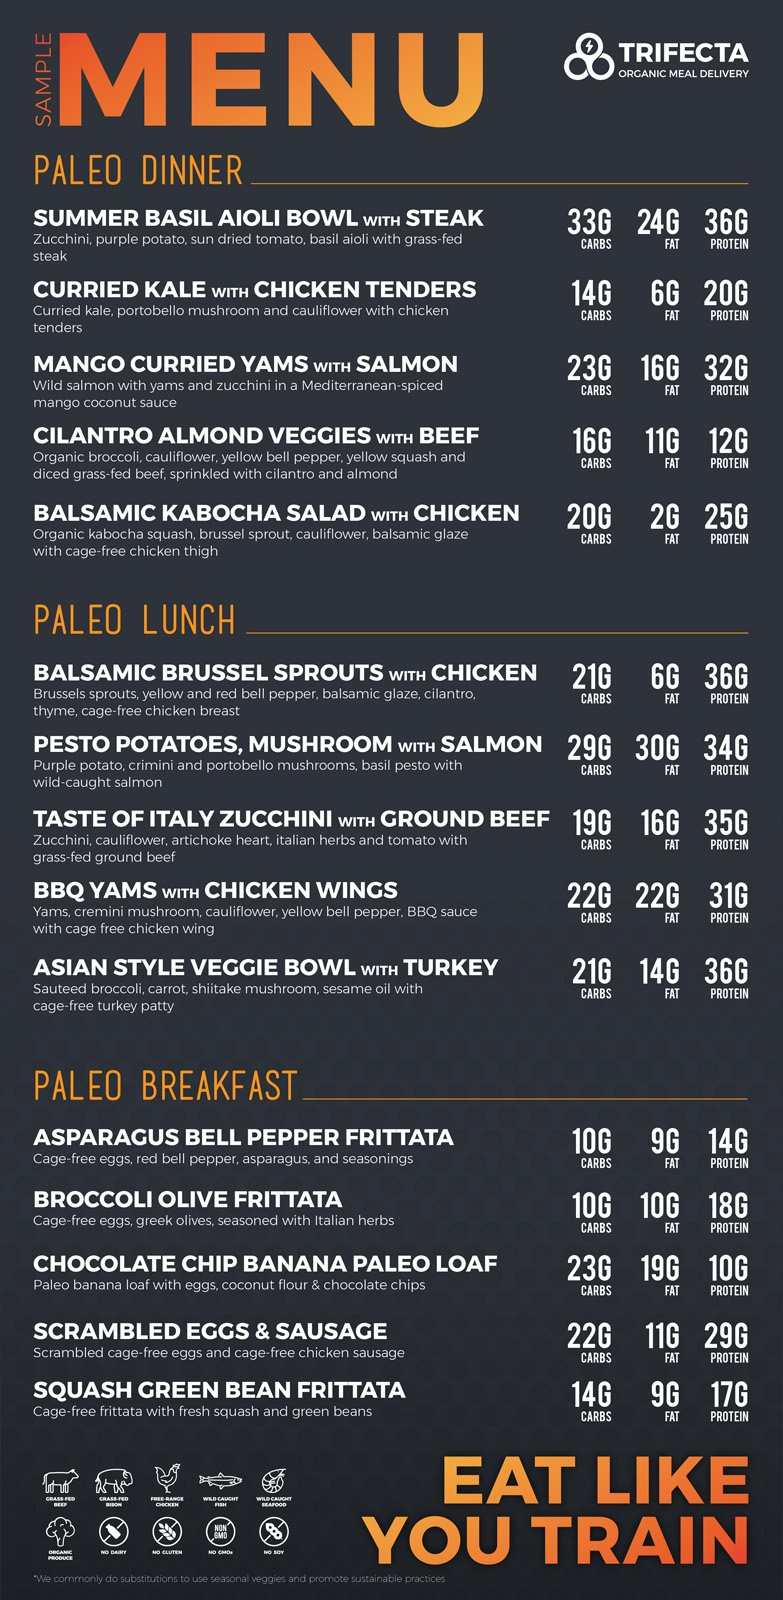 Cl_Sample_Menu_Paleo-01